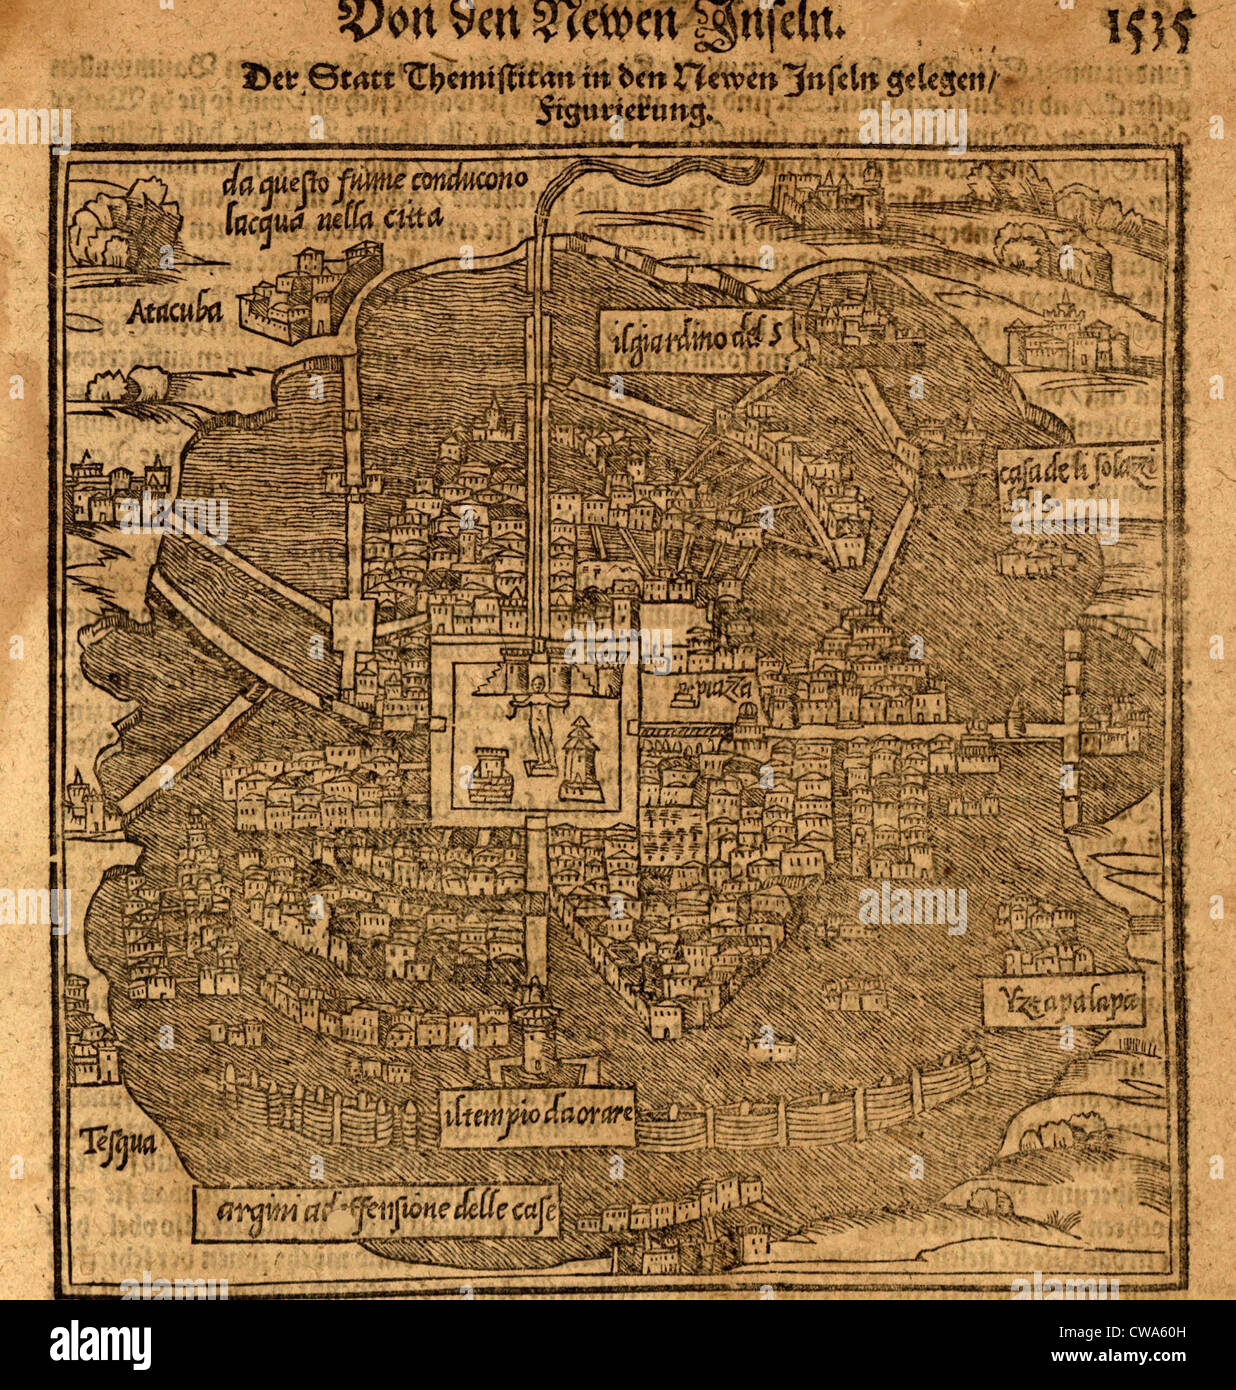 Aztec capital, Tenochtitlan, now Mexico City, from a 1597 map by Sebastian  Munster. Map shows the island where the original